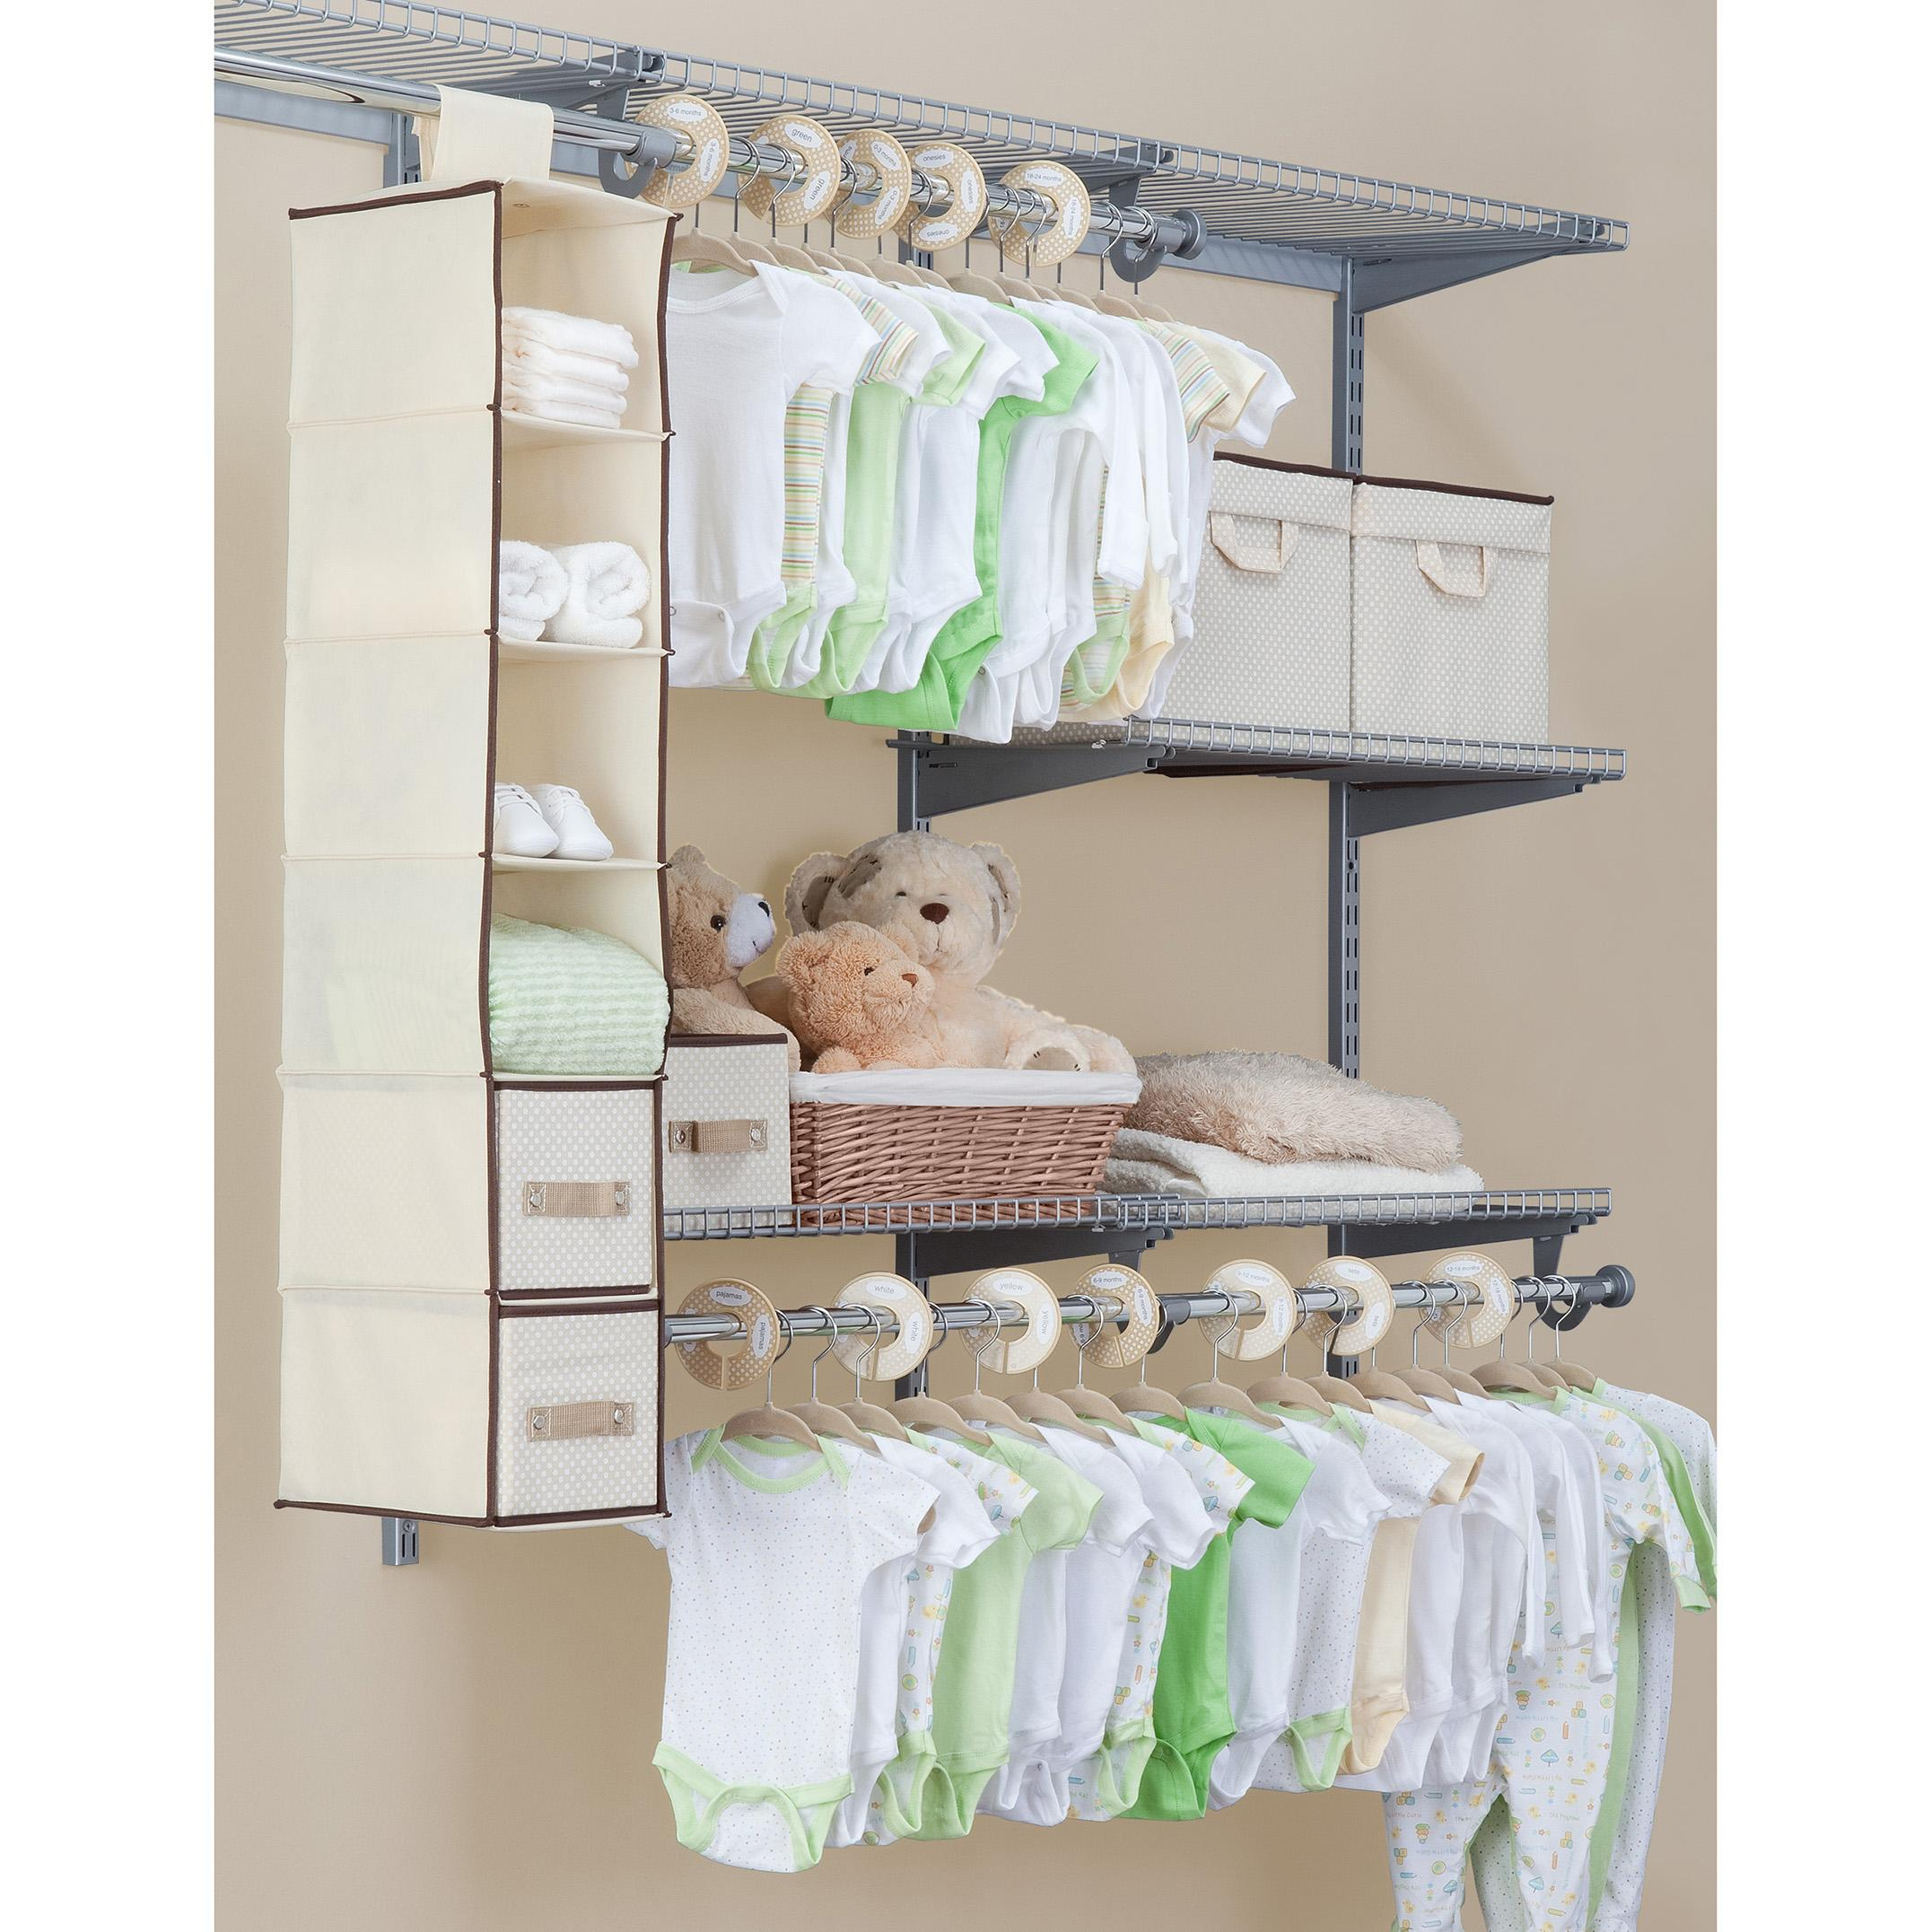 toddler on oakes kids quick and closet closets organizing positively budget organization tricks baby to a tips your s home kid blog